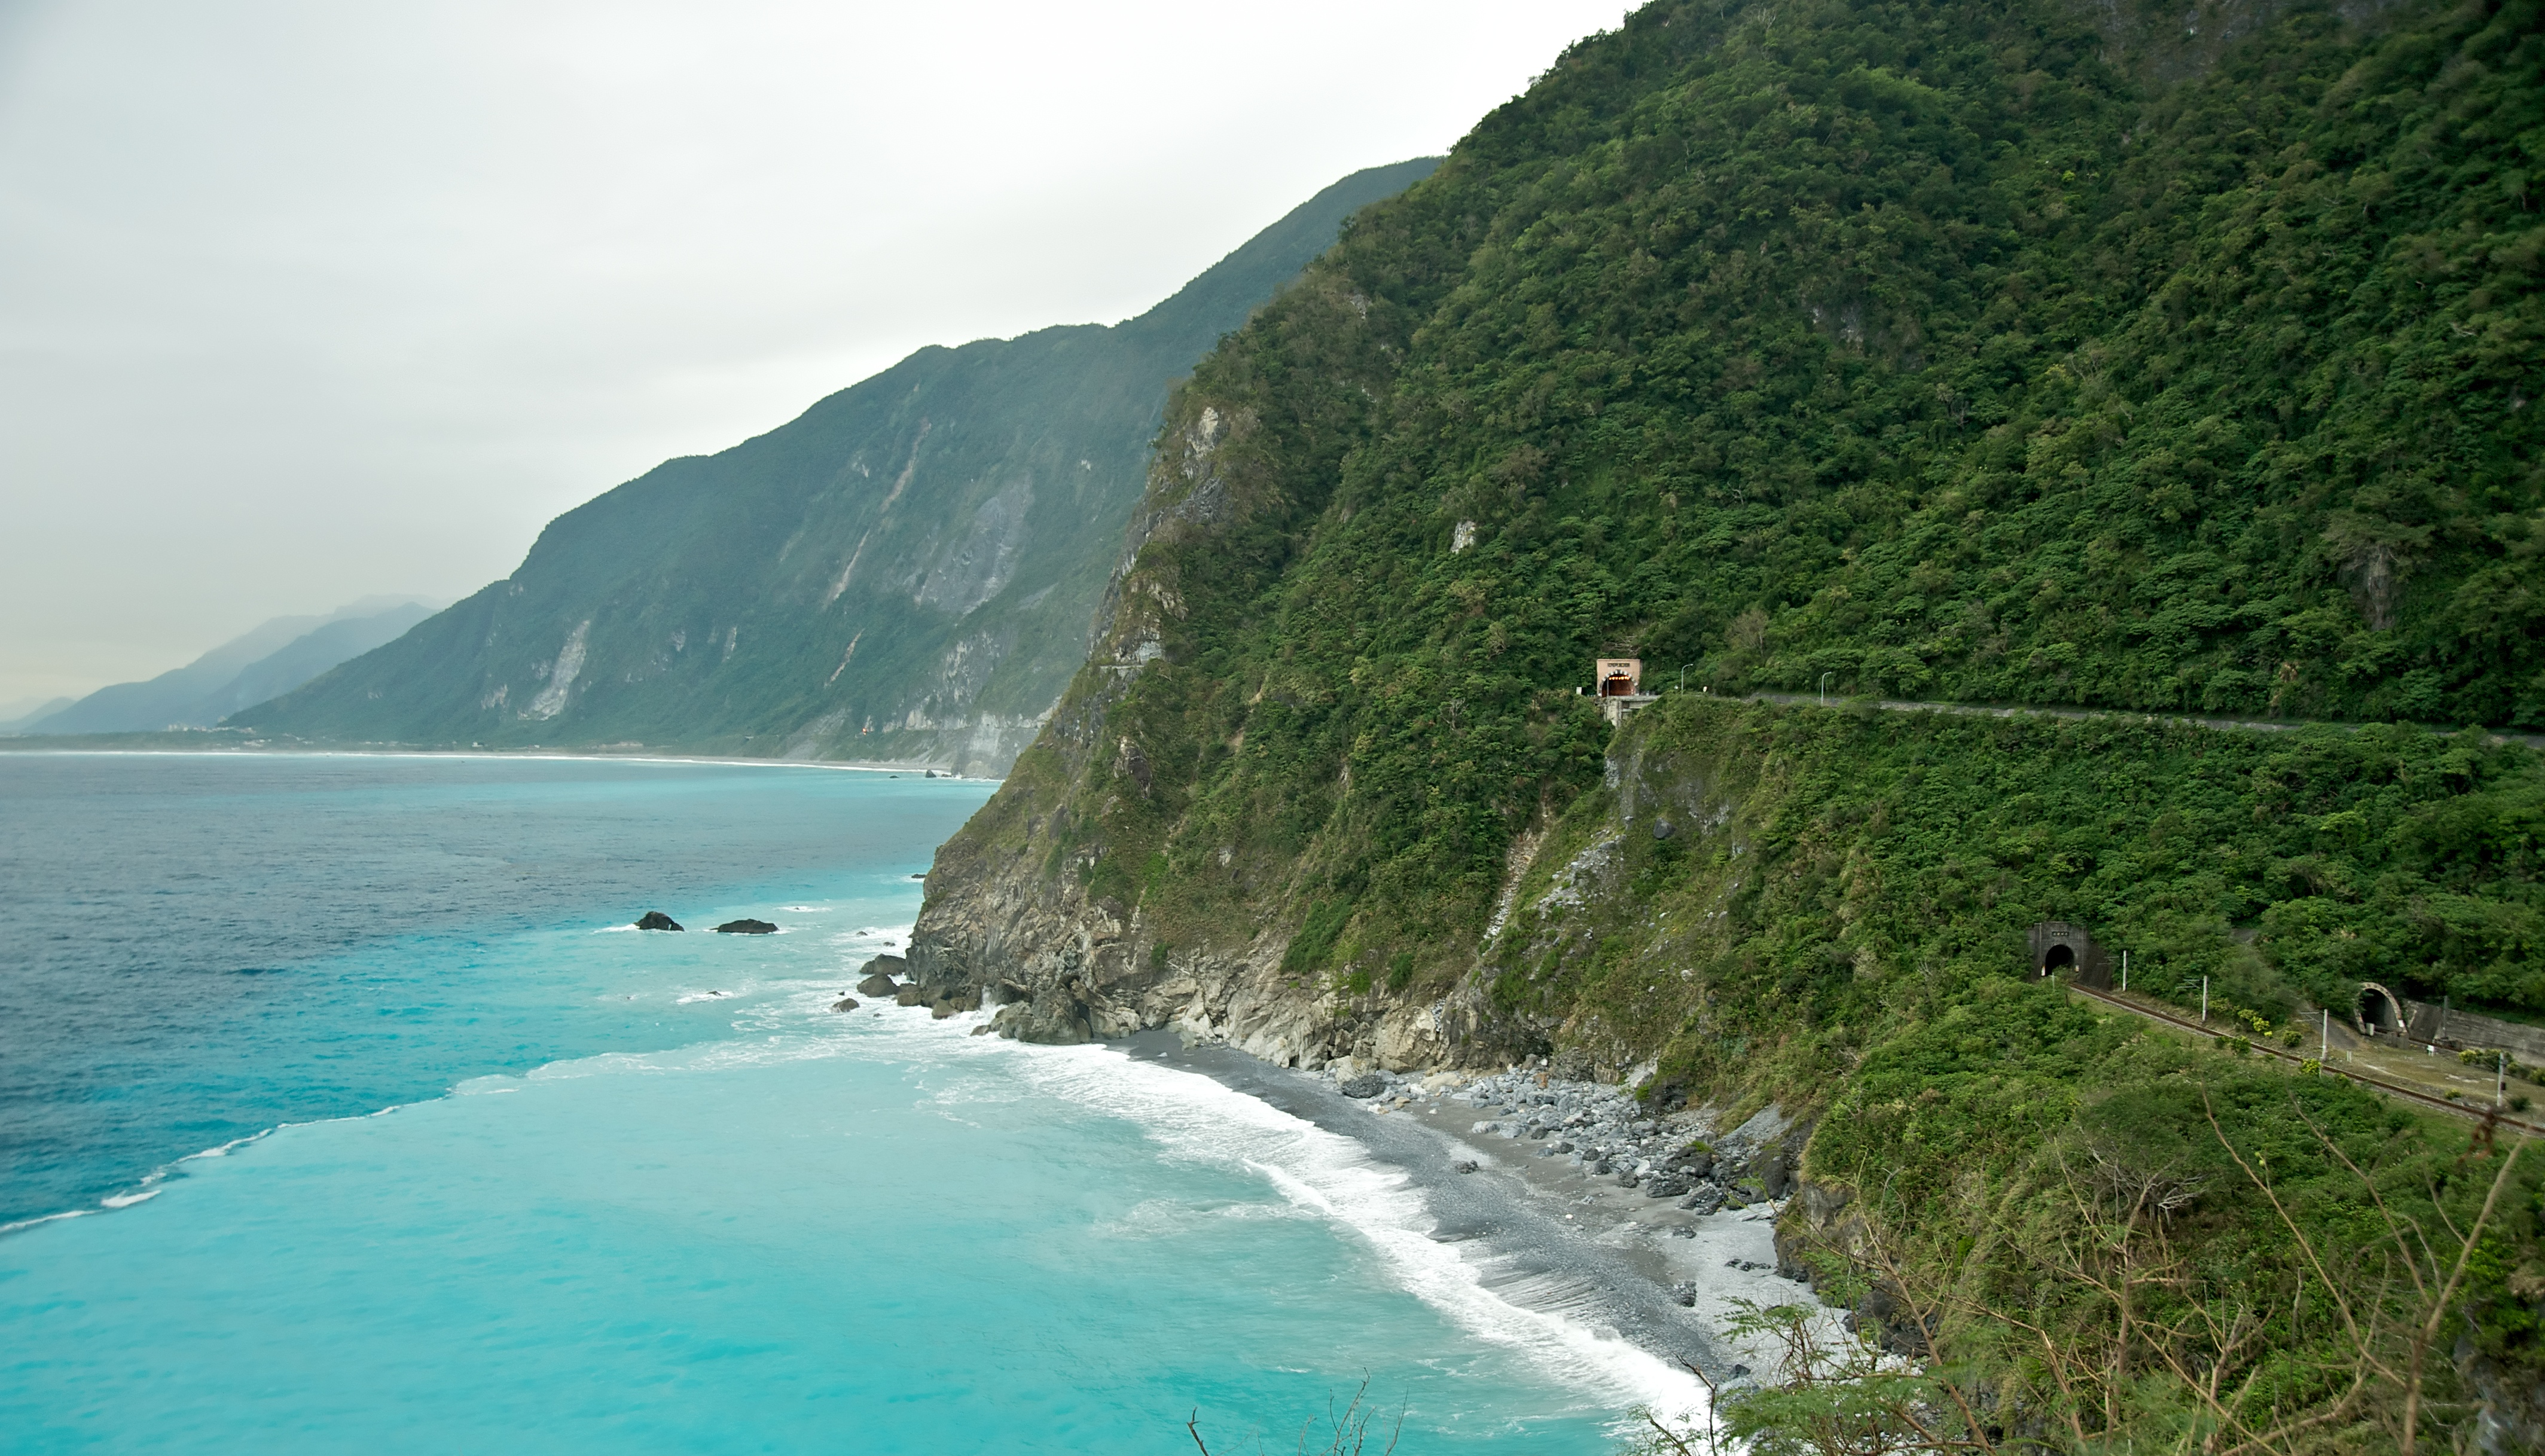 Taiwan_2009_CingShui_Cliffs_on_SuHua_Highway_FRD_6762_Pano_Extracted